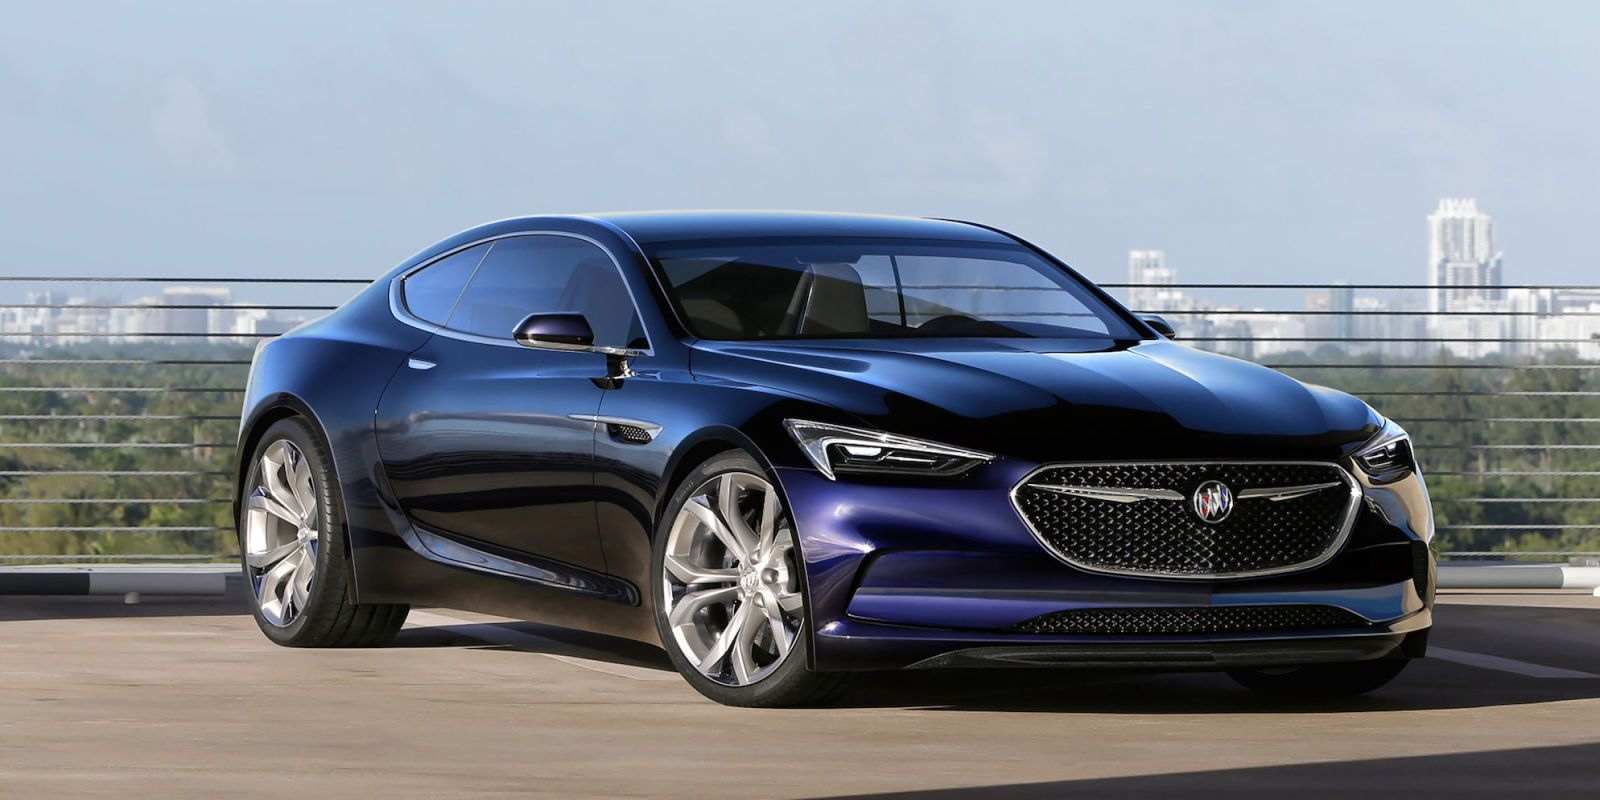 New buick concept car